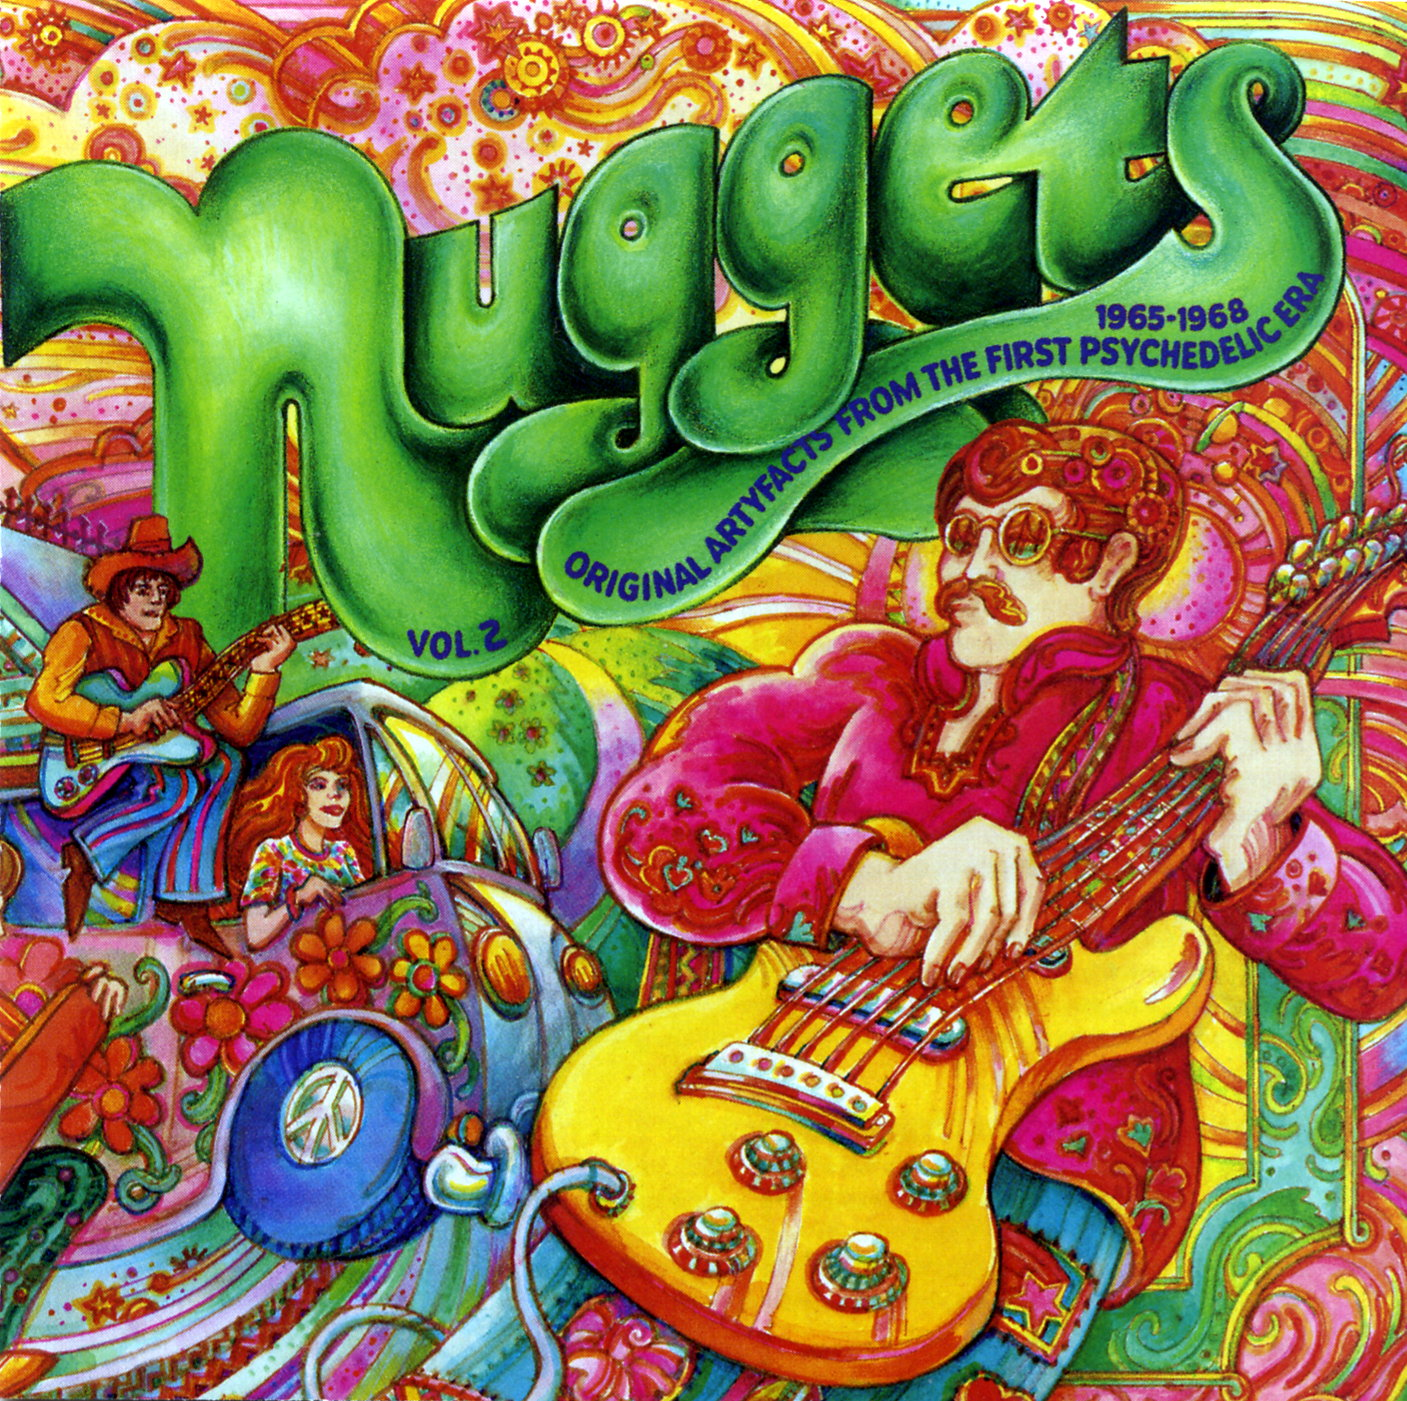 Nuggets Box Set